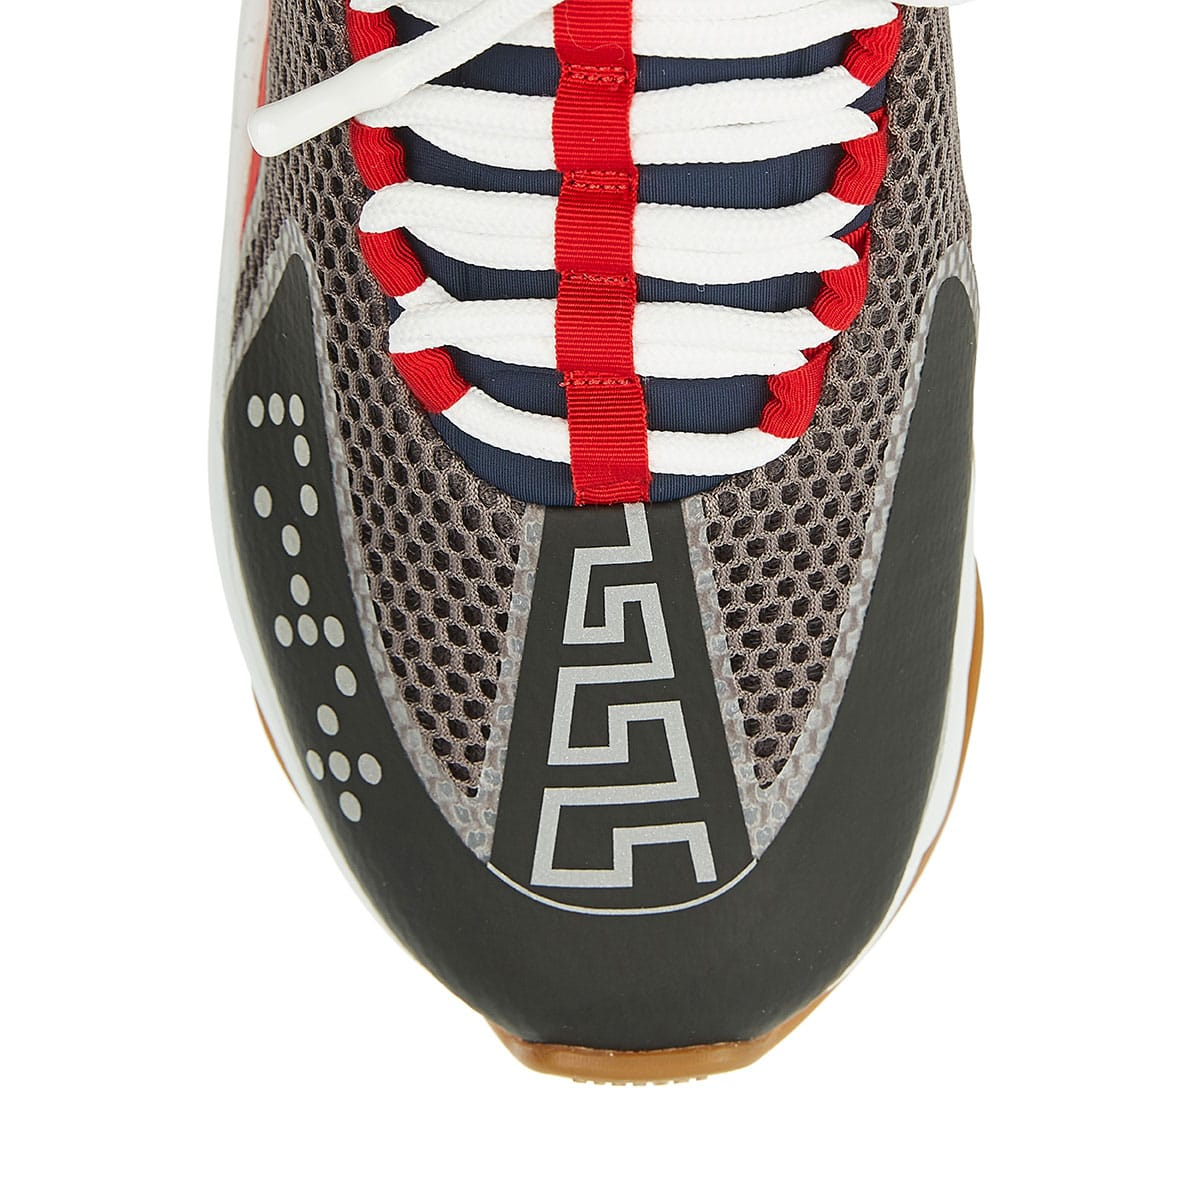 Cross Chainer leather-trimmed sneakers